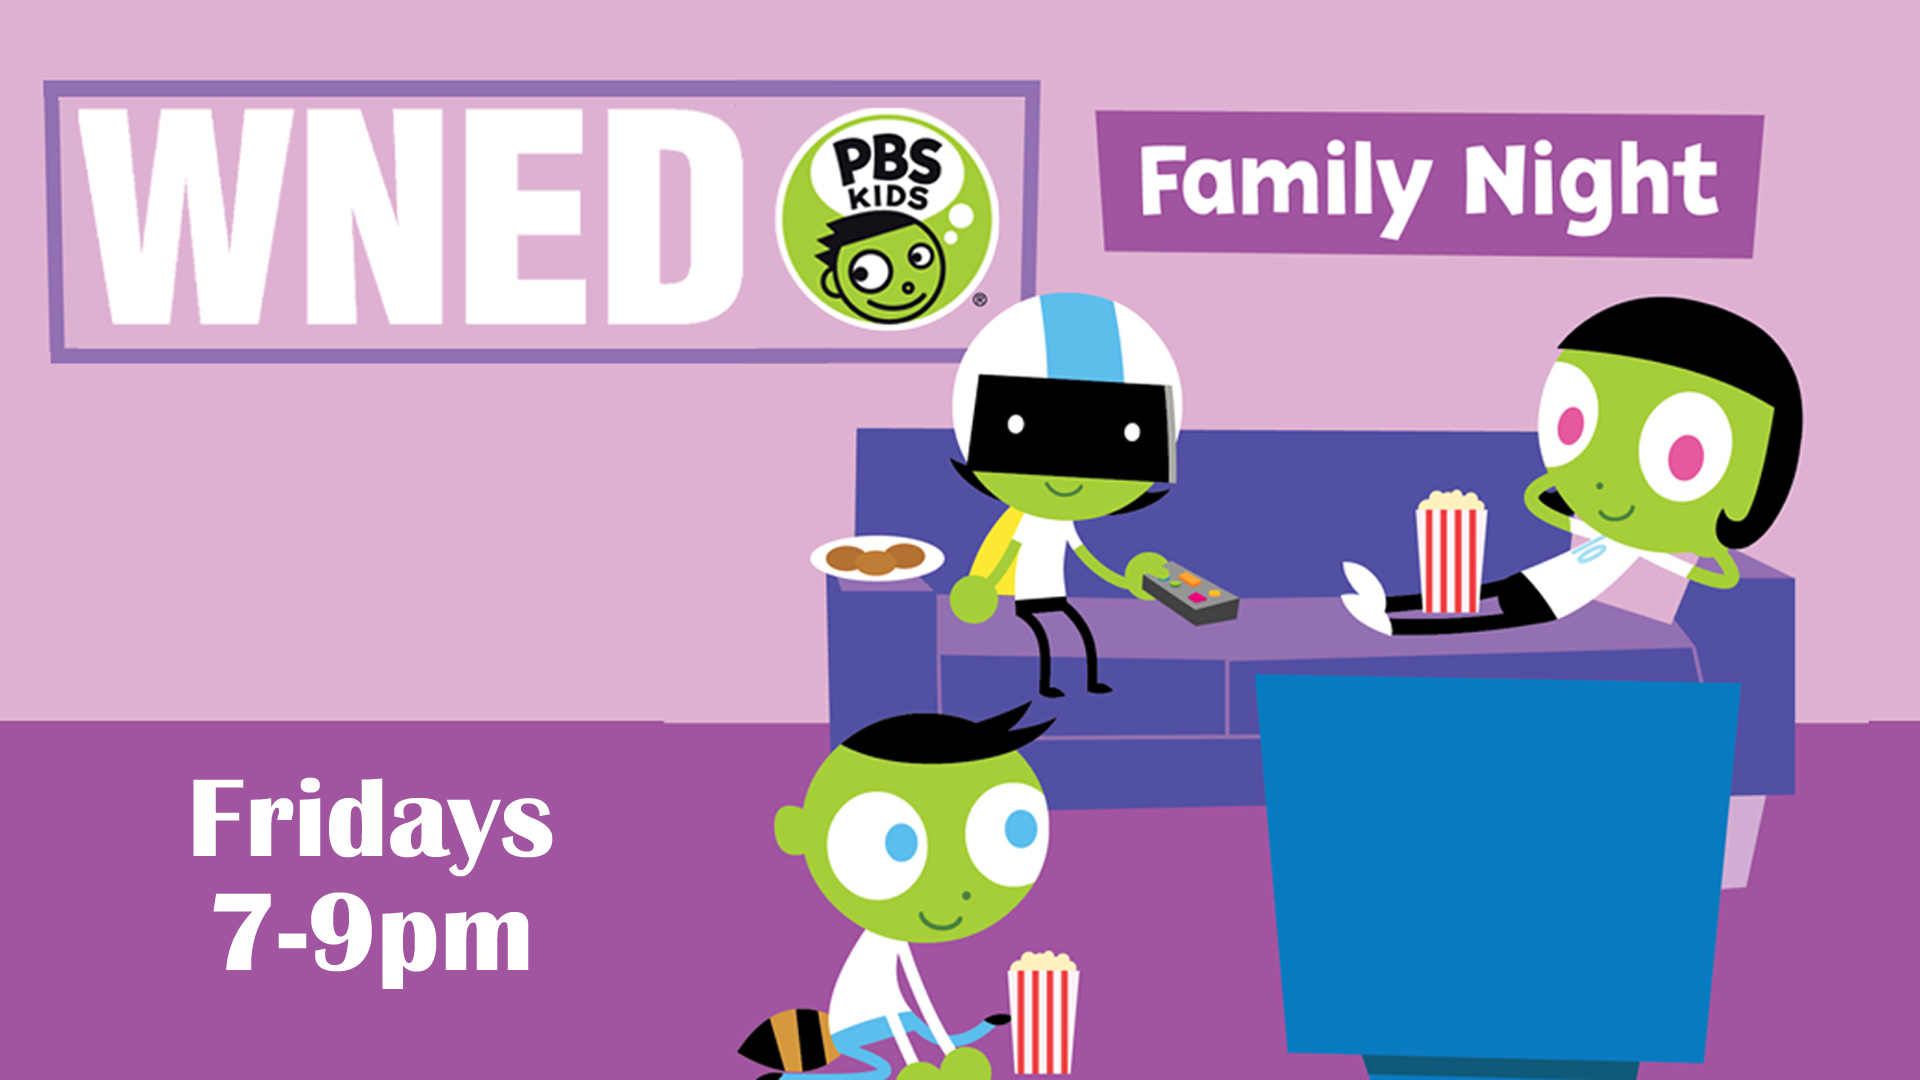 <strong>WNED PBS KIDS Channel Family Night</strong>